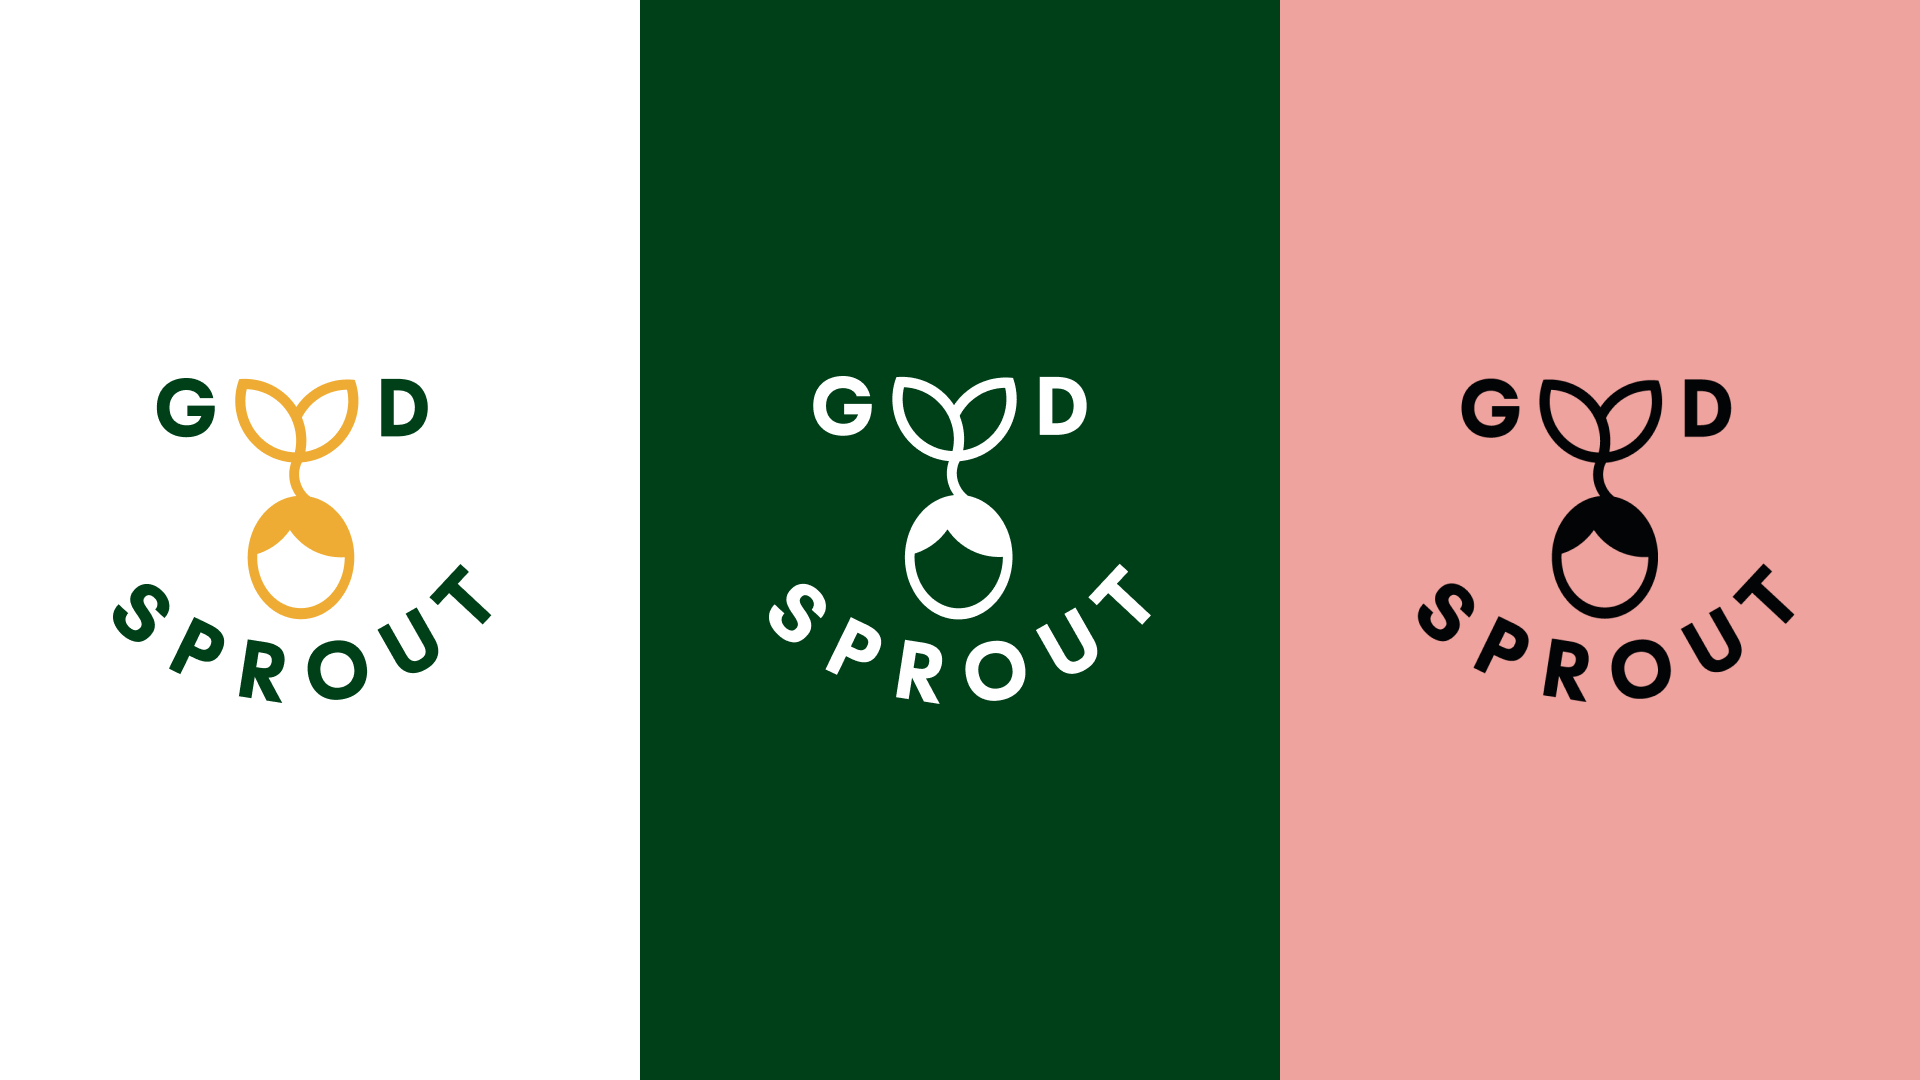 Projekt Good Sprout 8